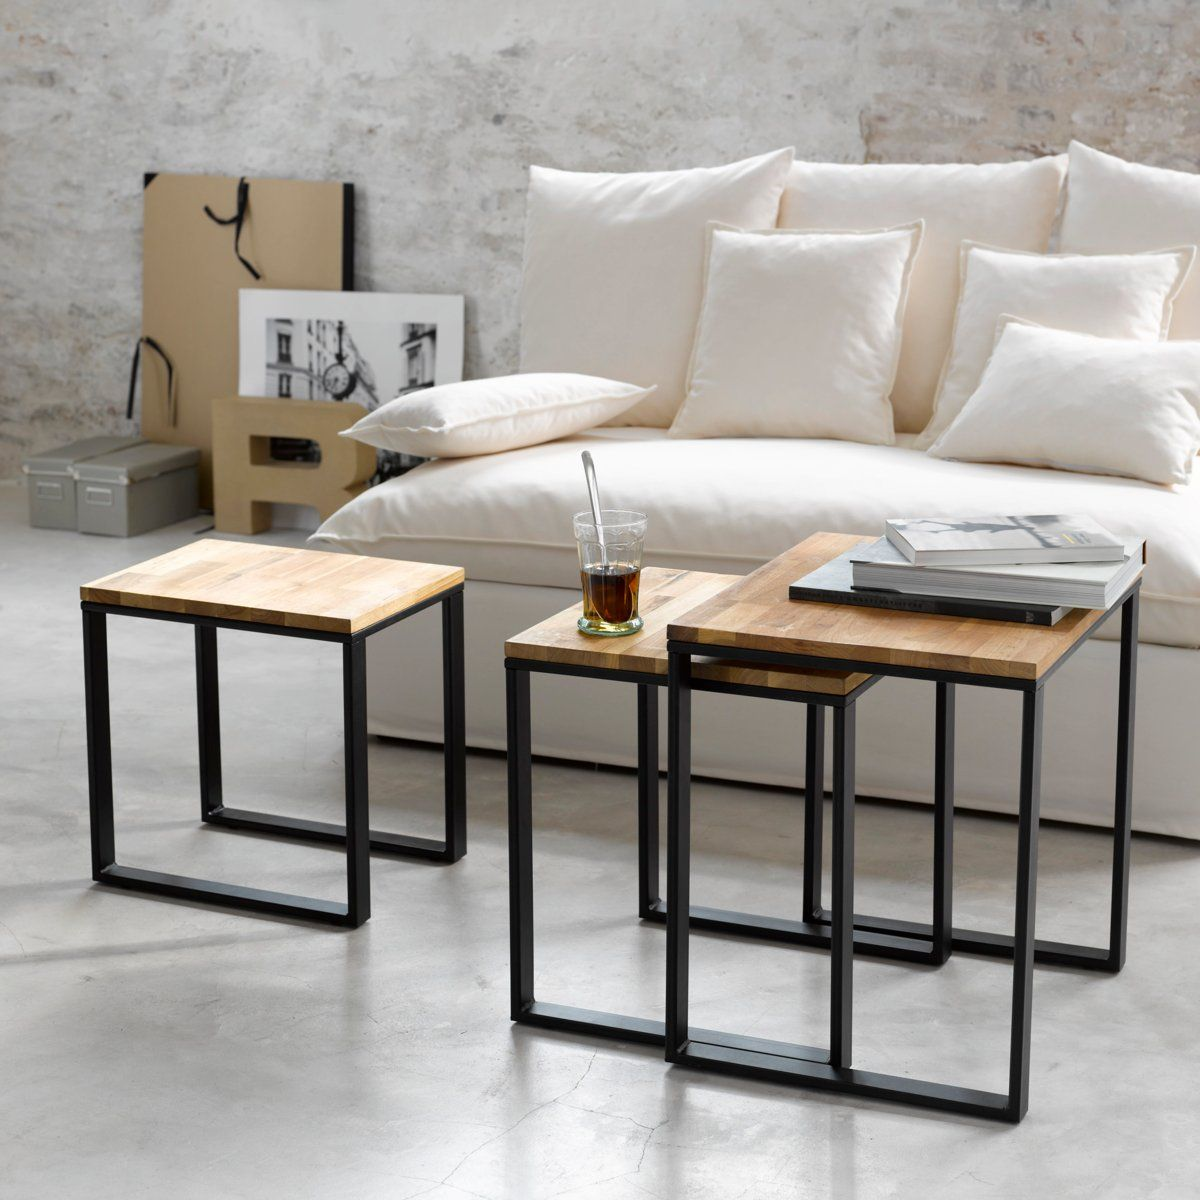 Table basse rep rage nouvelle tendance 1 le blog d co for Les plus belles tables basses